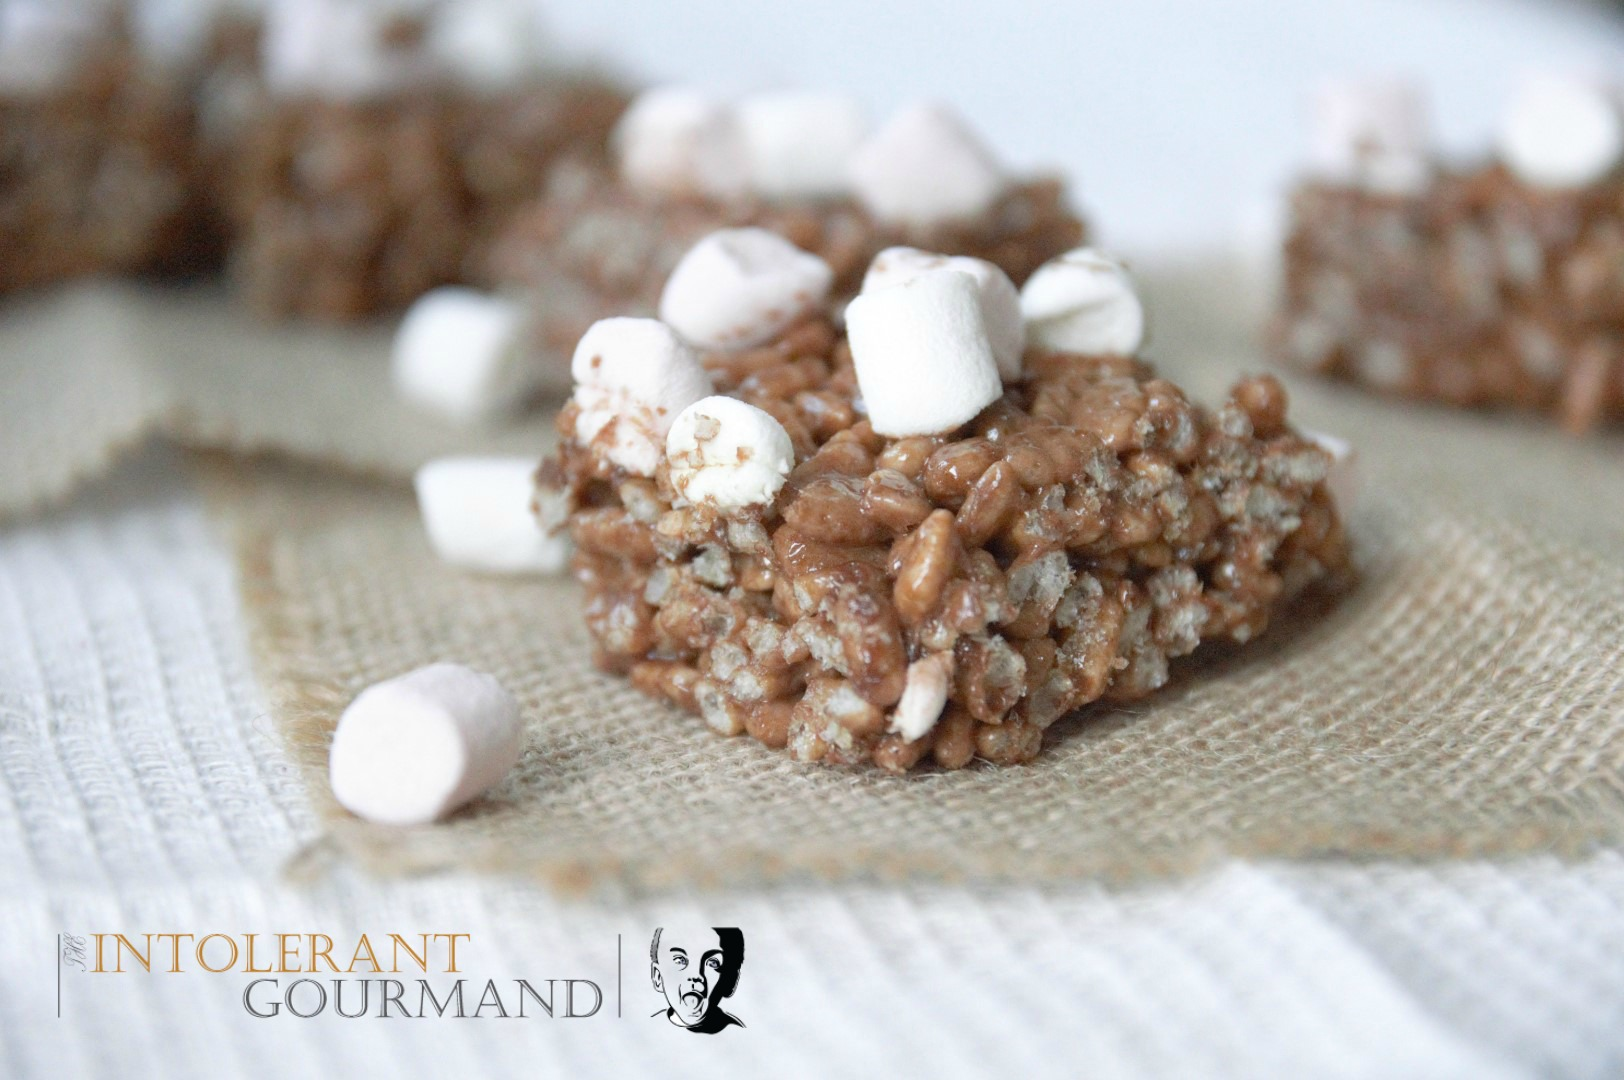 Chocolate marshmallow crispie squares - dairy-free, gluten-free, wheat-free, egg-free, nut-free, vegan and delicious! www.intolerantgourmand.com